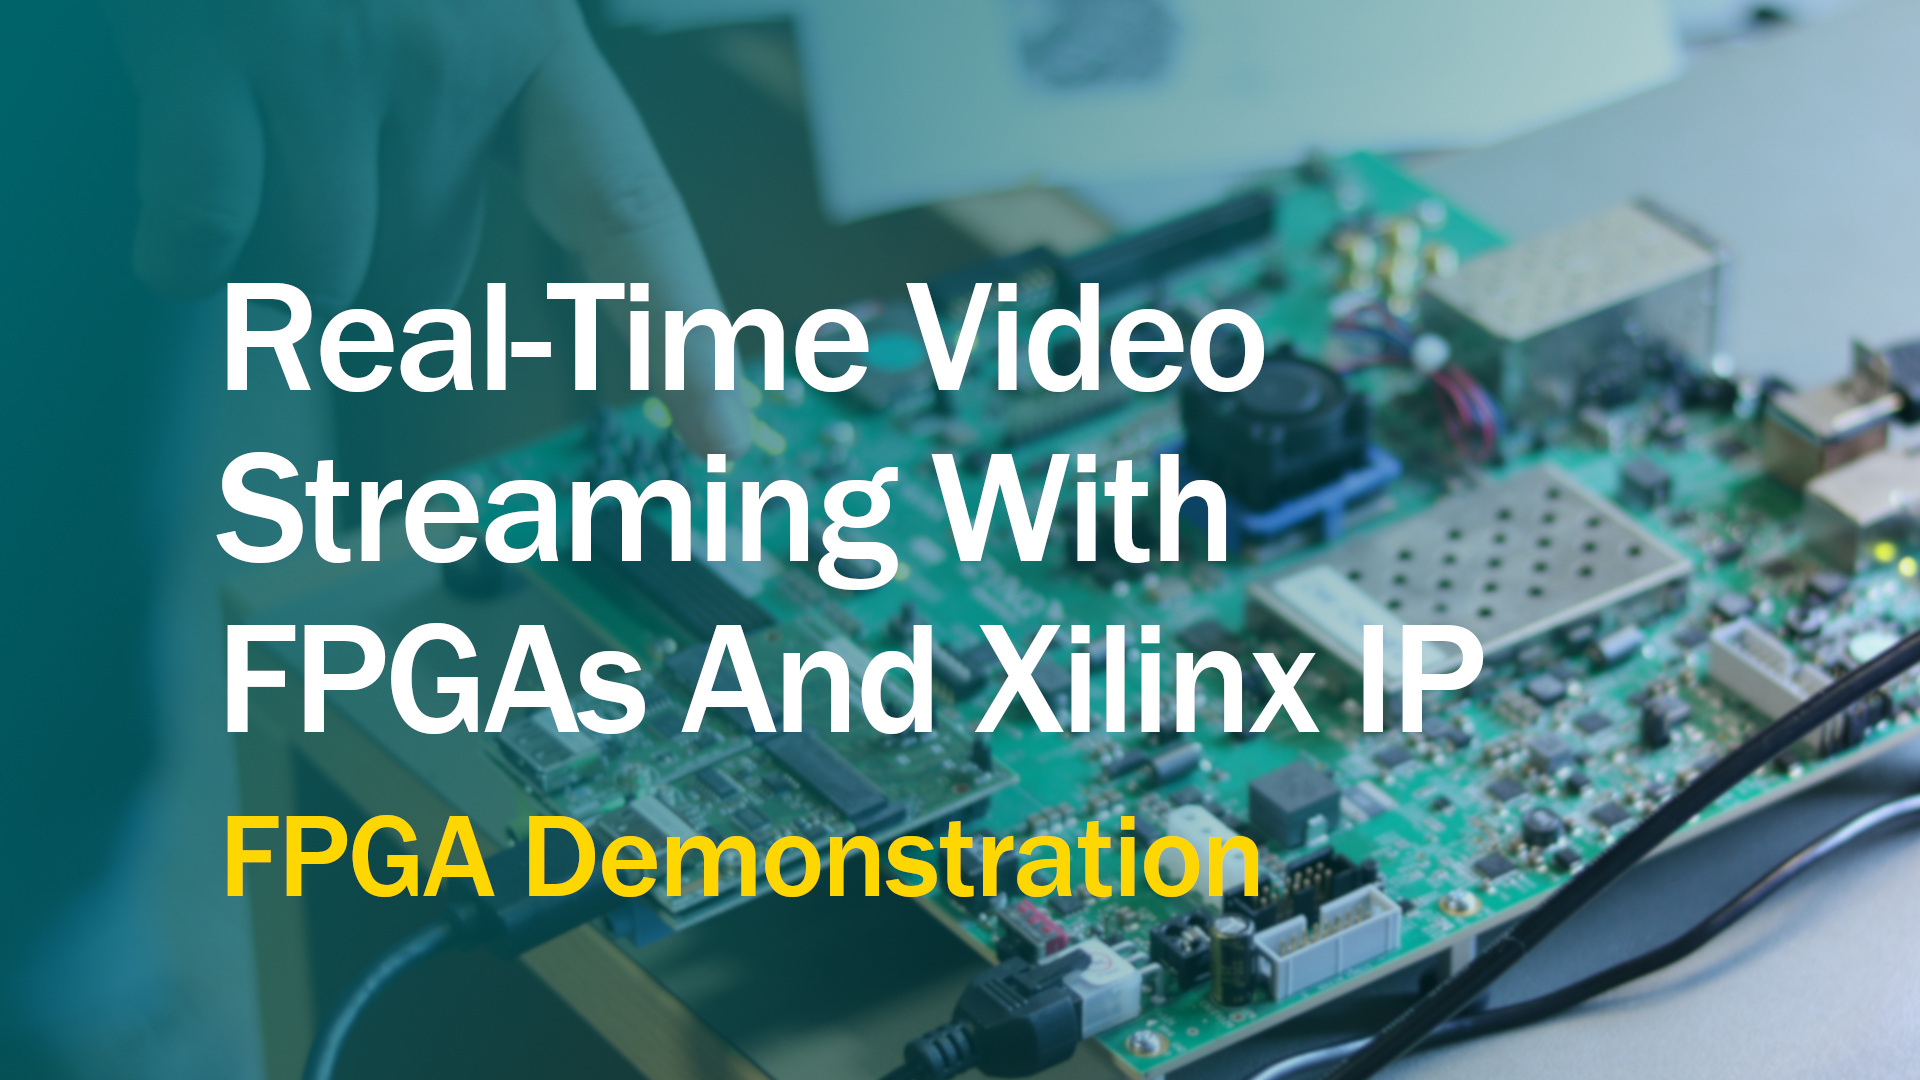 High-Speed Video Demonstration Shows How FPGAs And Xilinx IP Enable